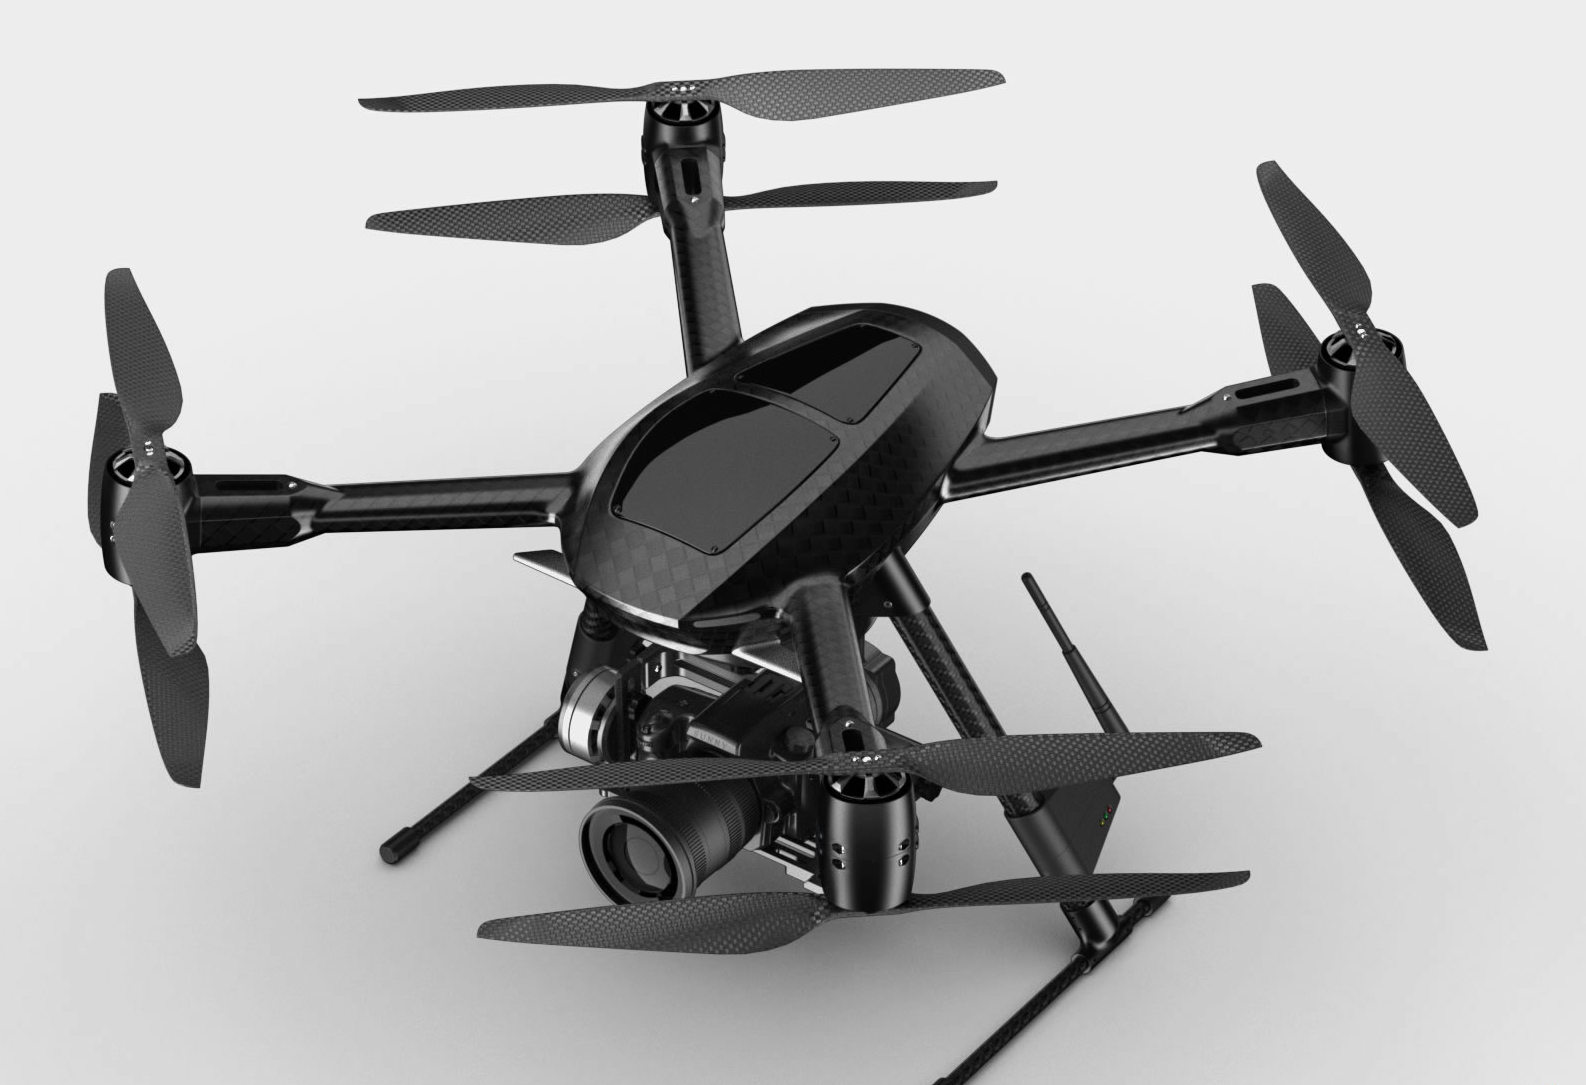 Altura Zenith - The Drone Made From 3D-Printing